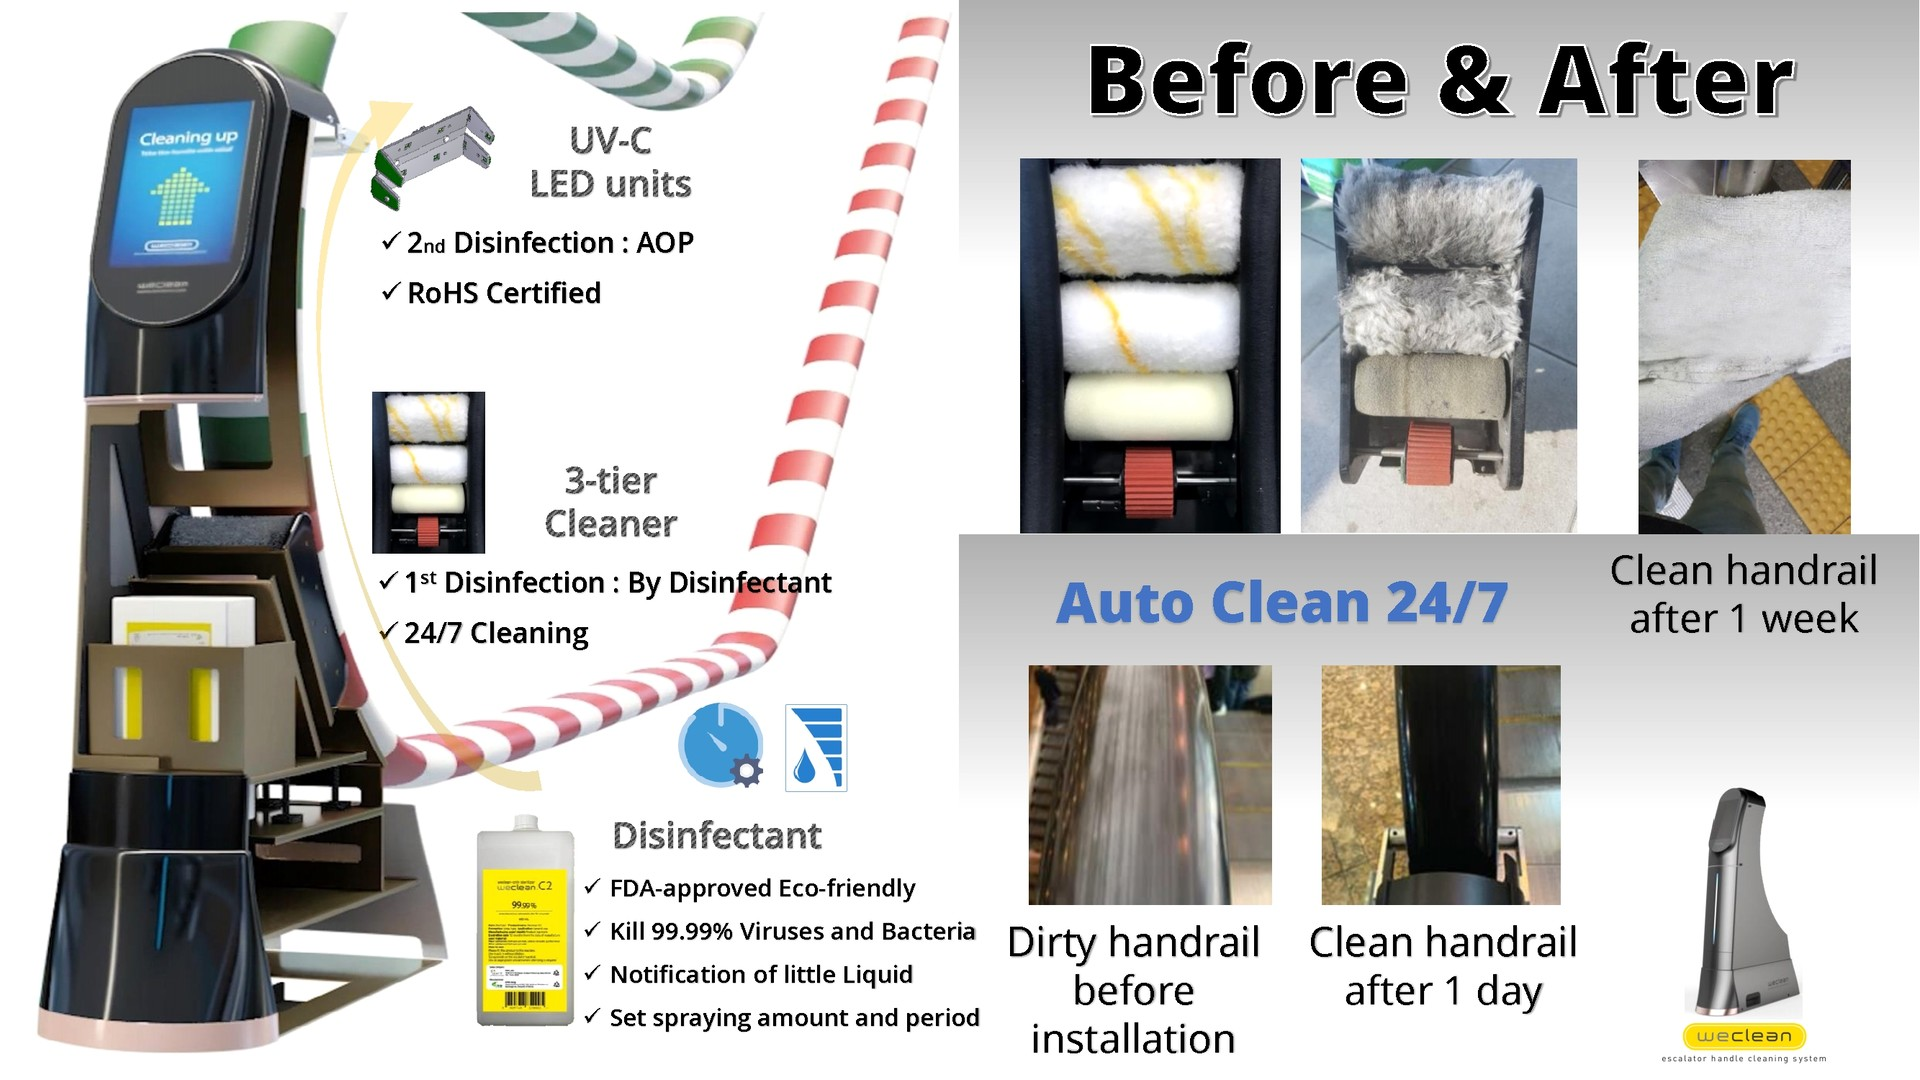 weclean's premium disinfection & cleaning process